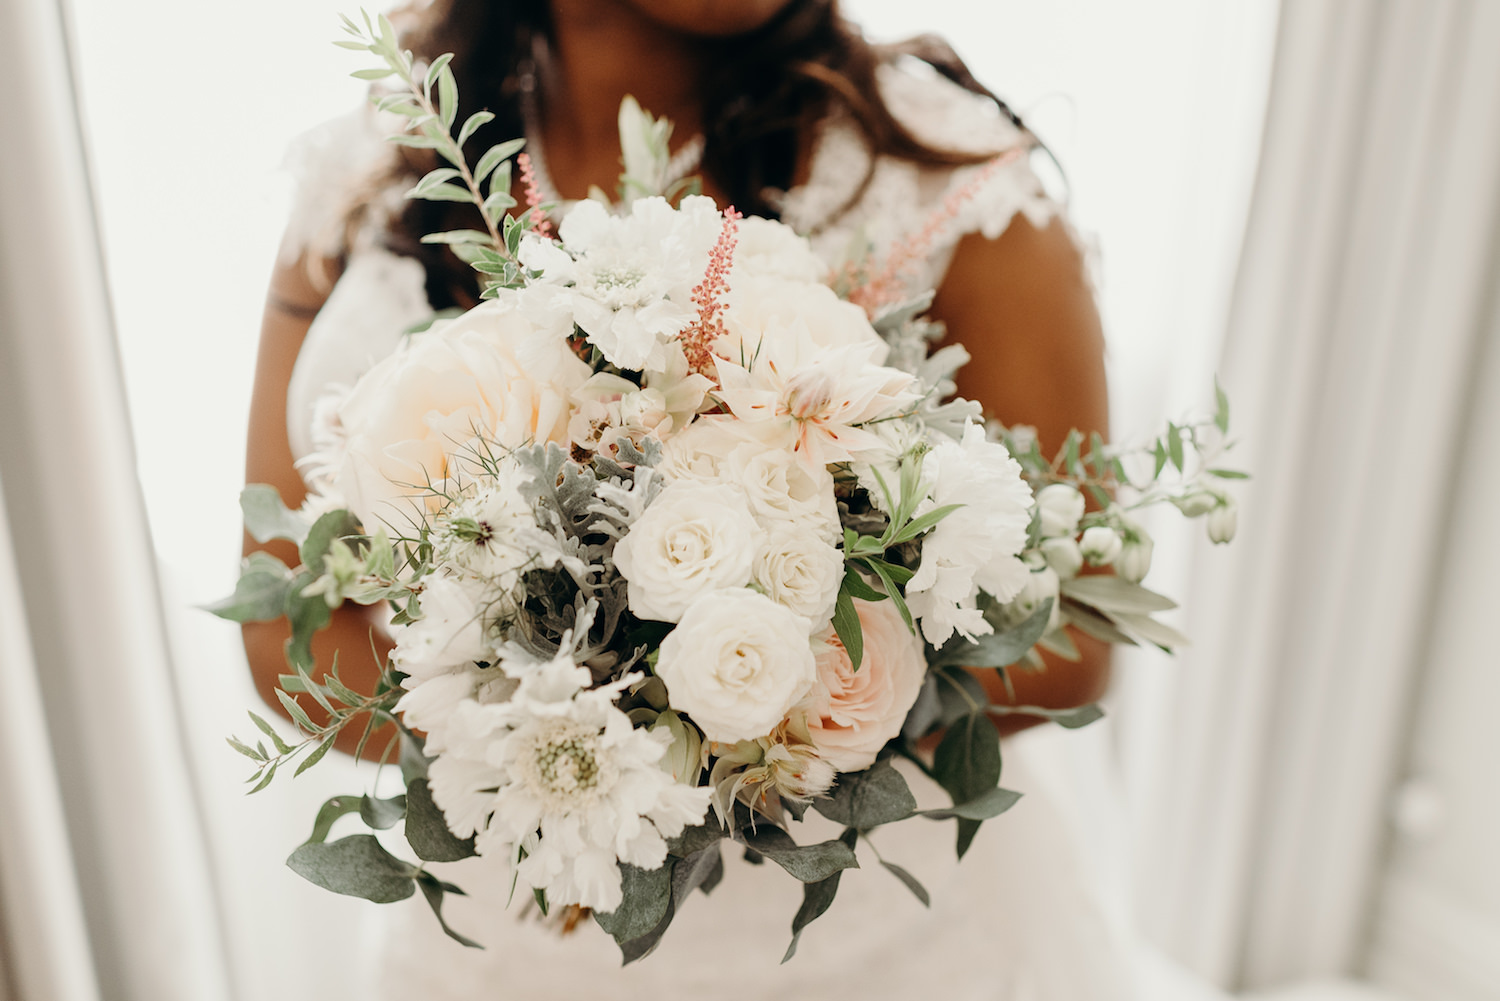 Luxury wedding bouquet fulled of roses and soft flowers